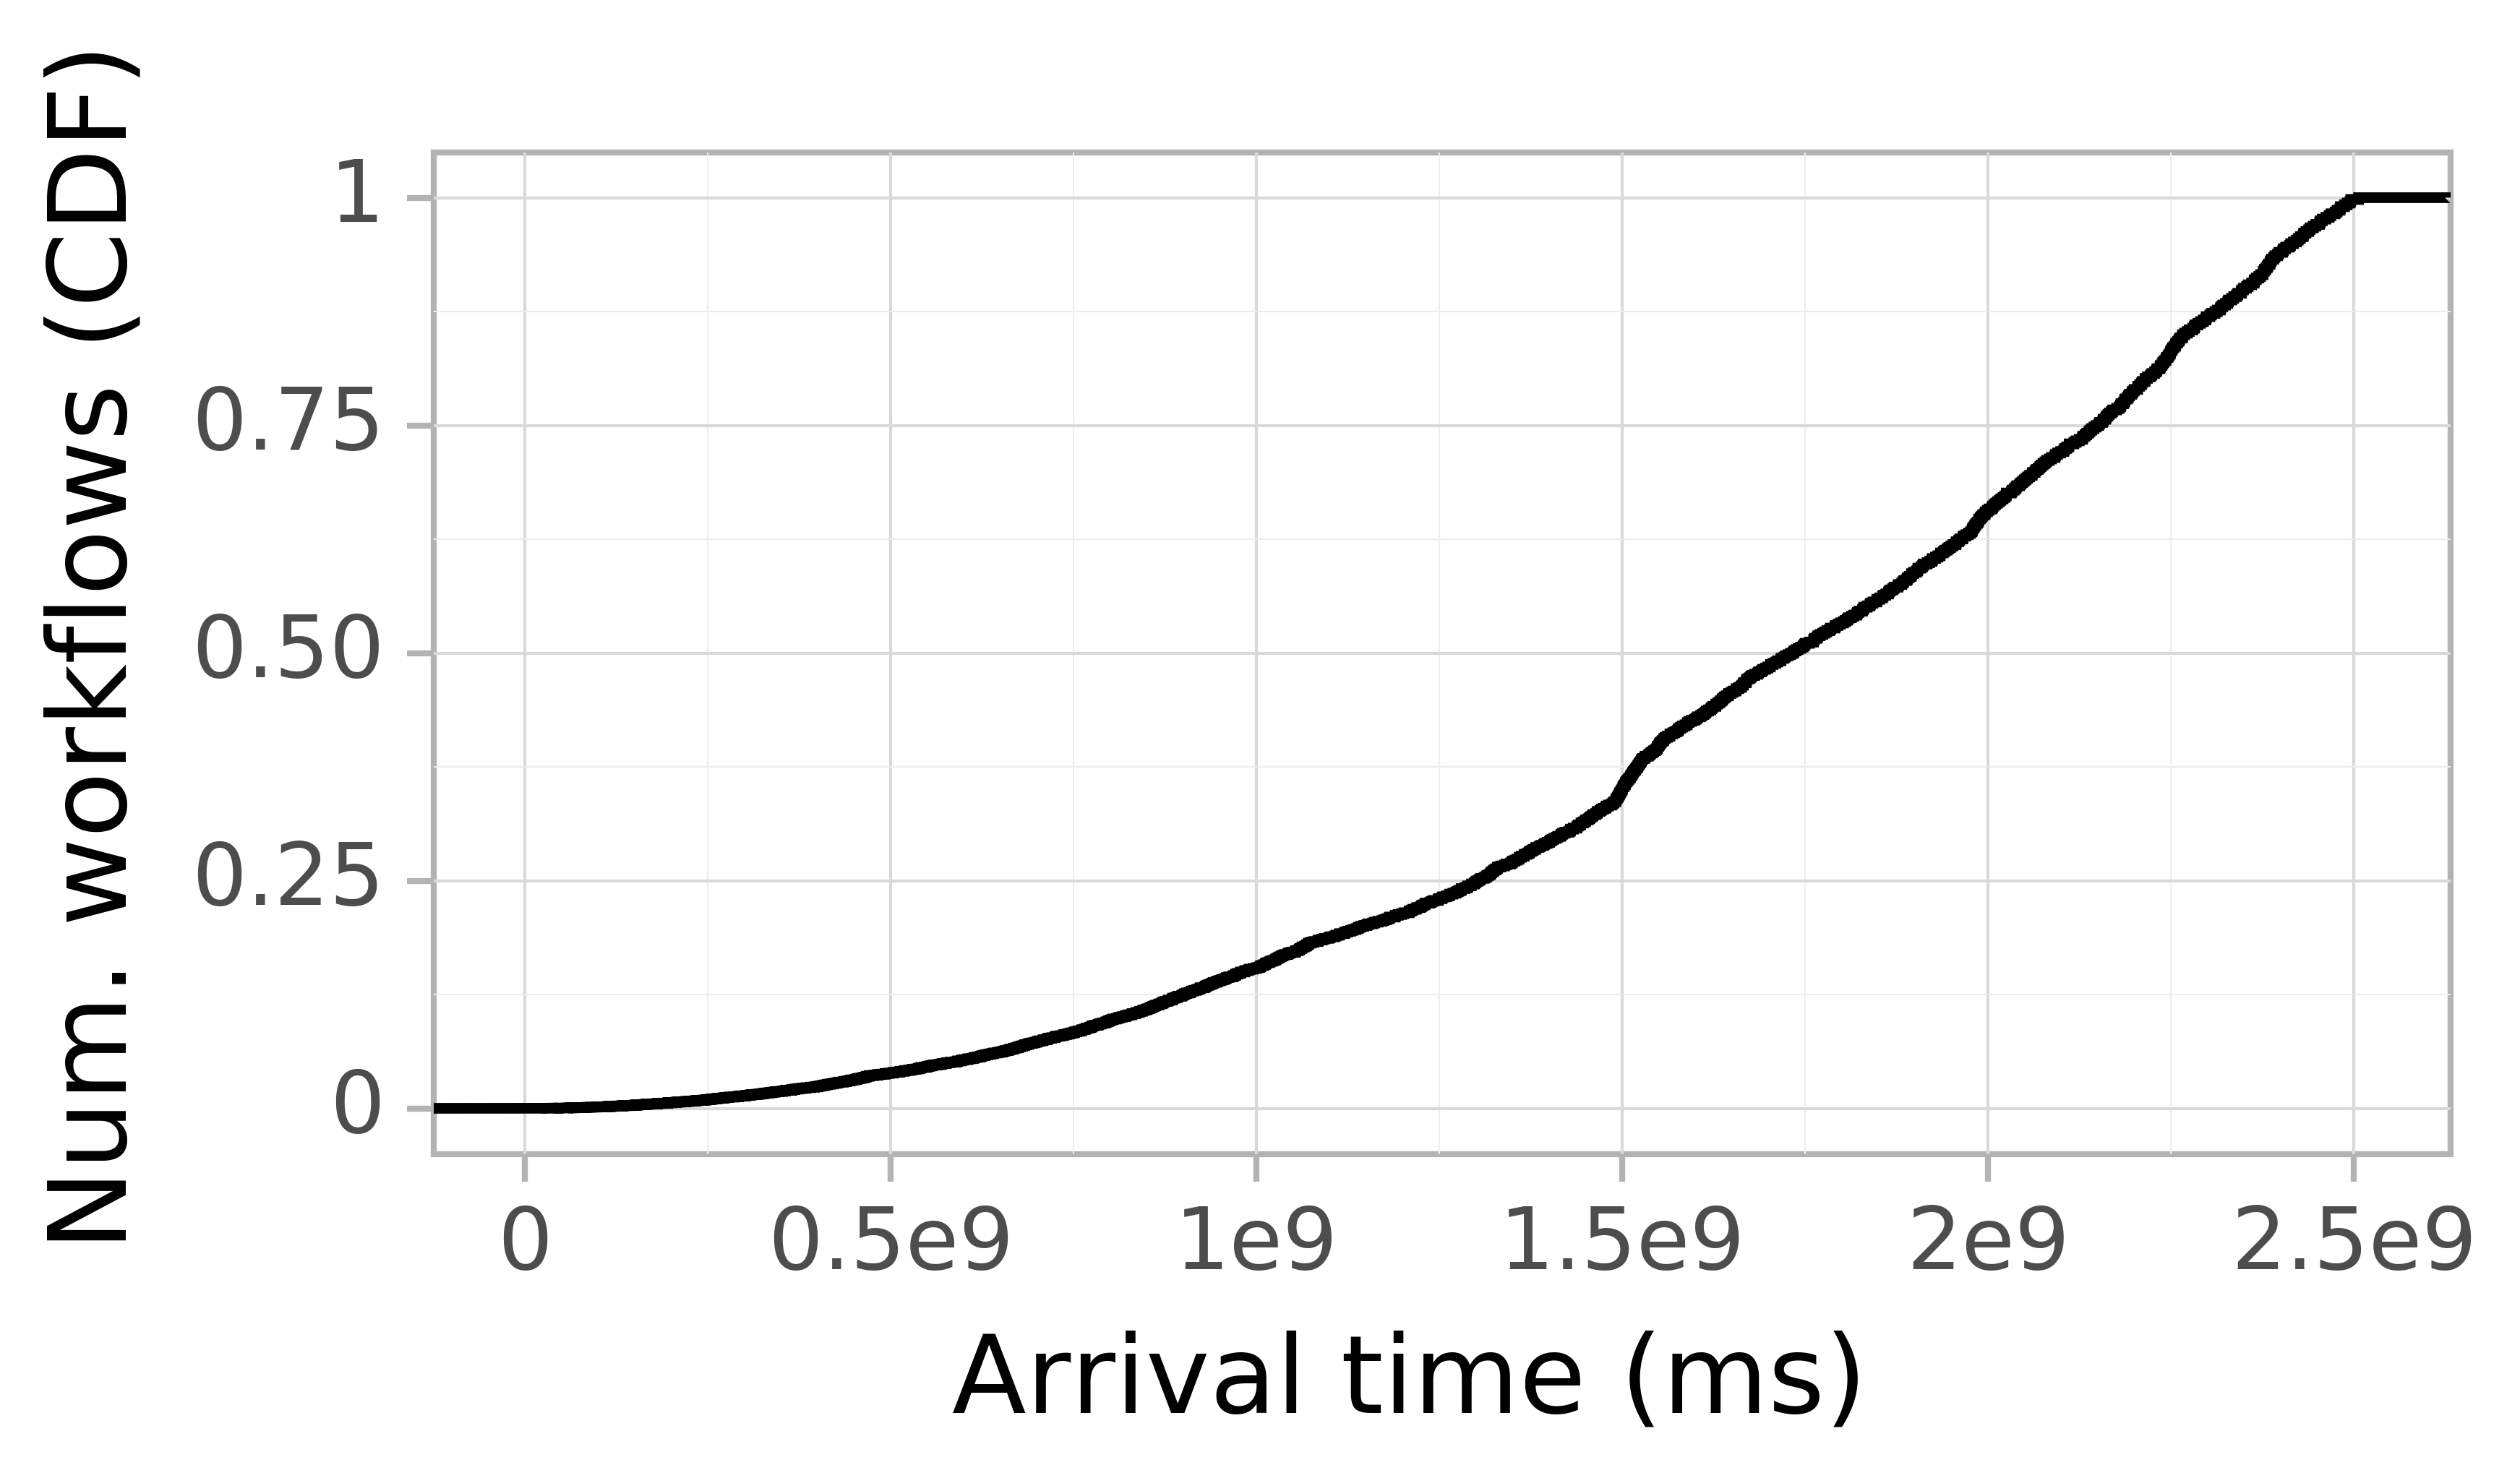 Job arrival CDF graph for the Google trace.